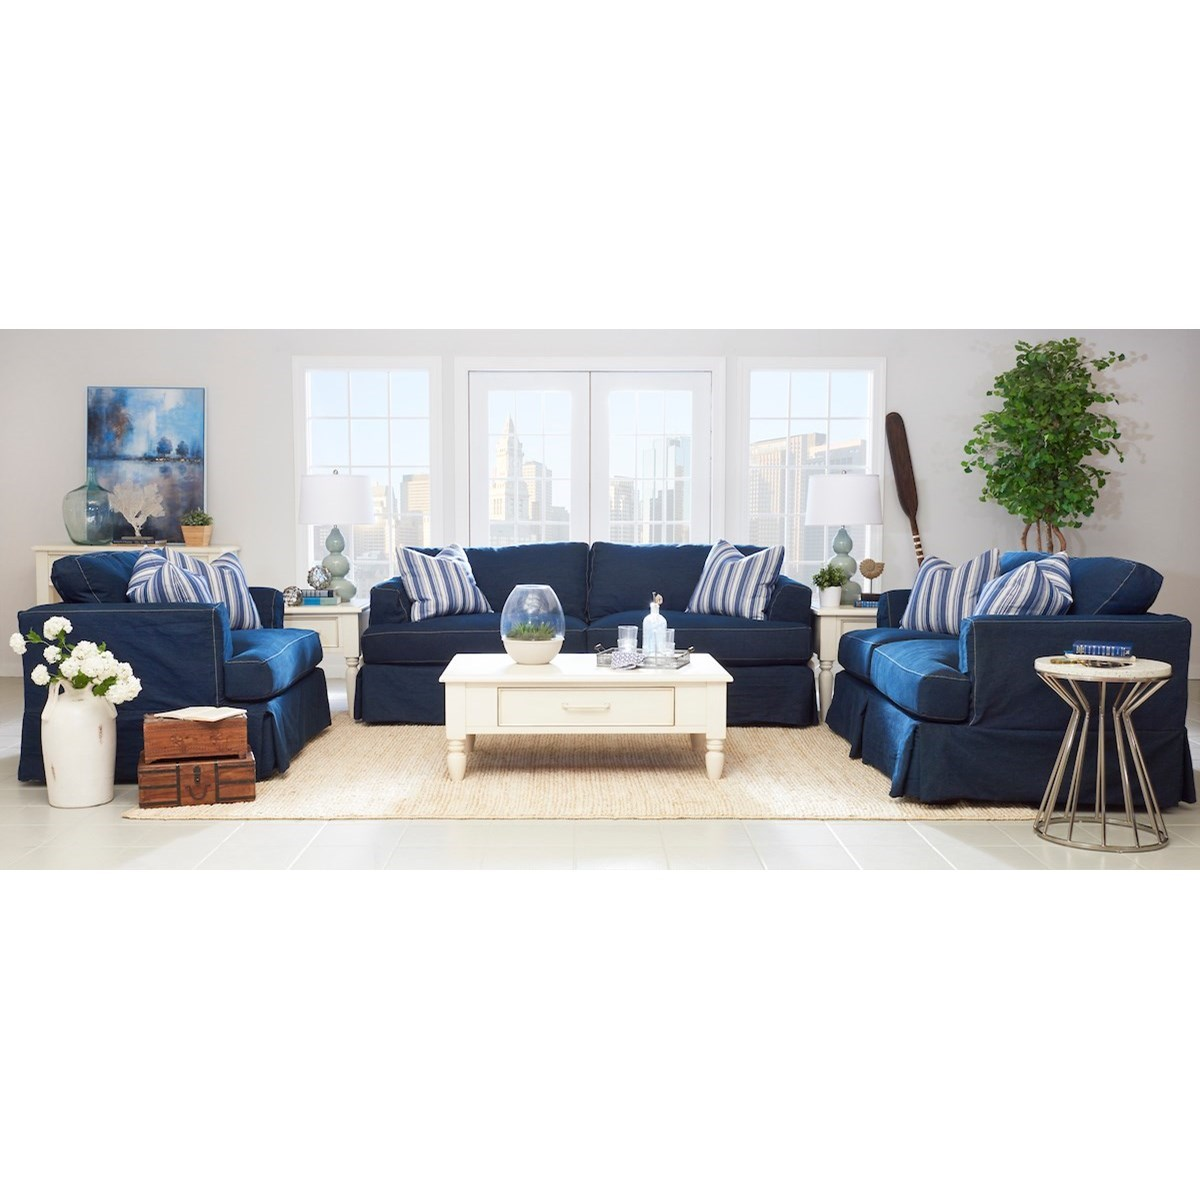 Bentley Living Room Group by Klaussner at Johnny Janosik